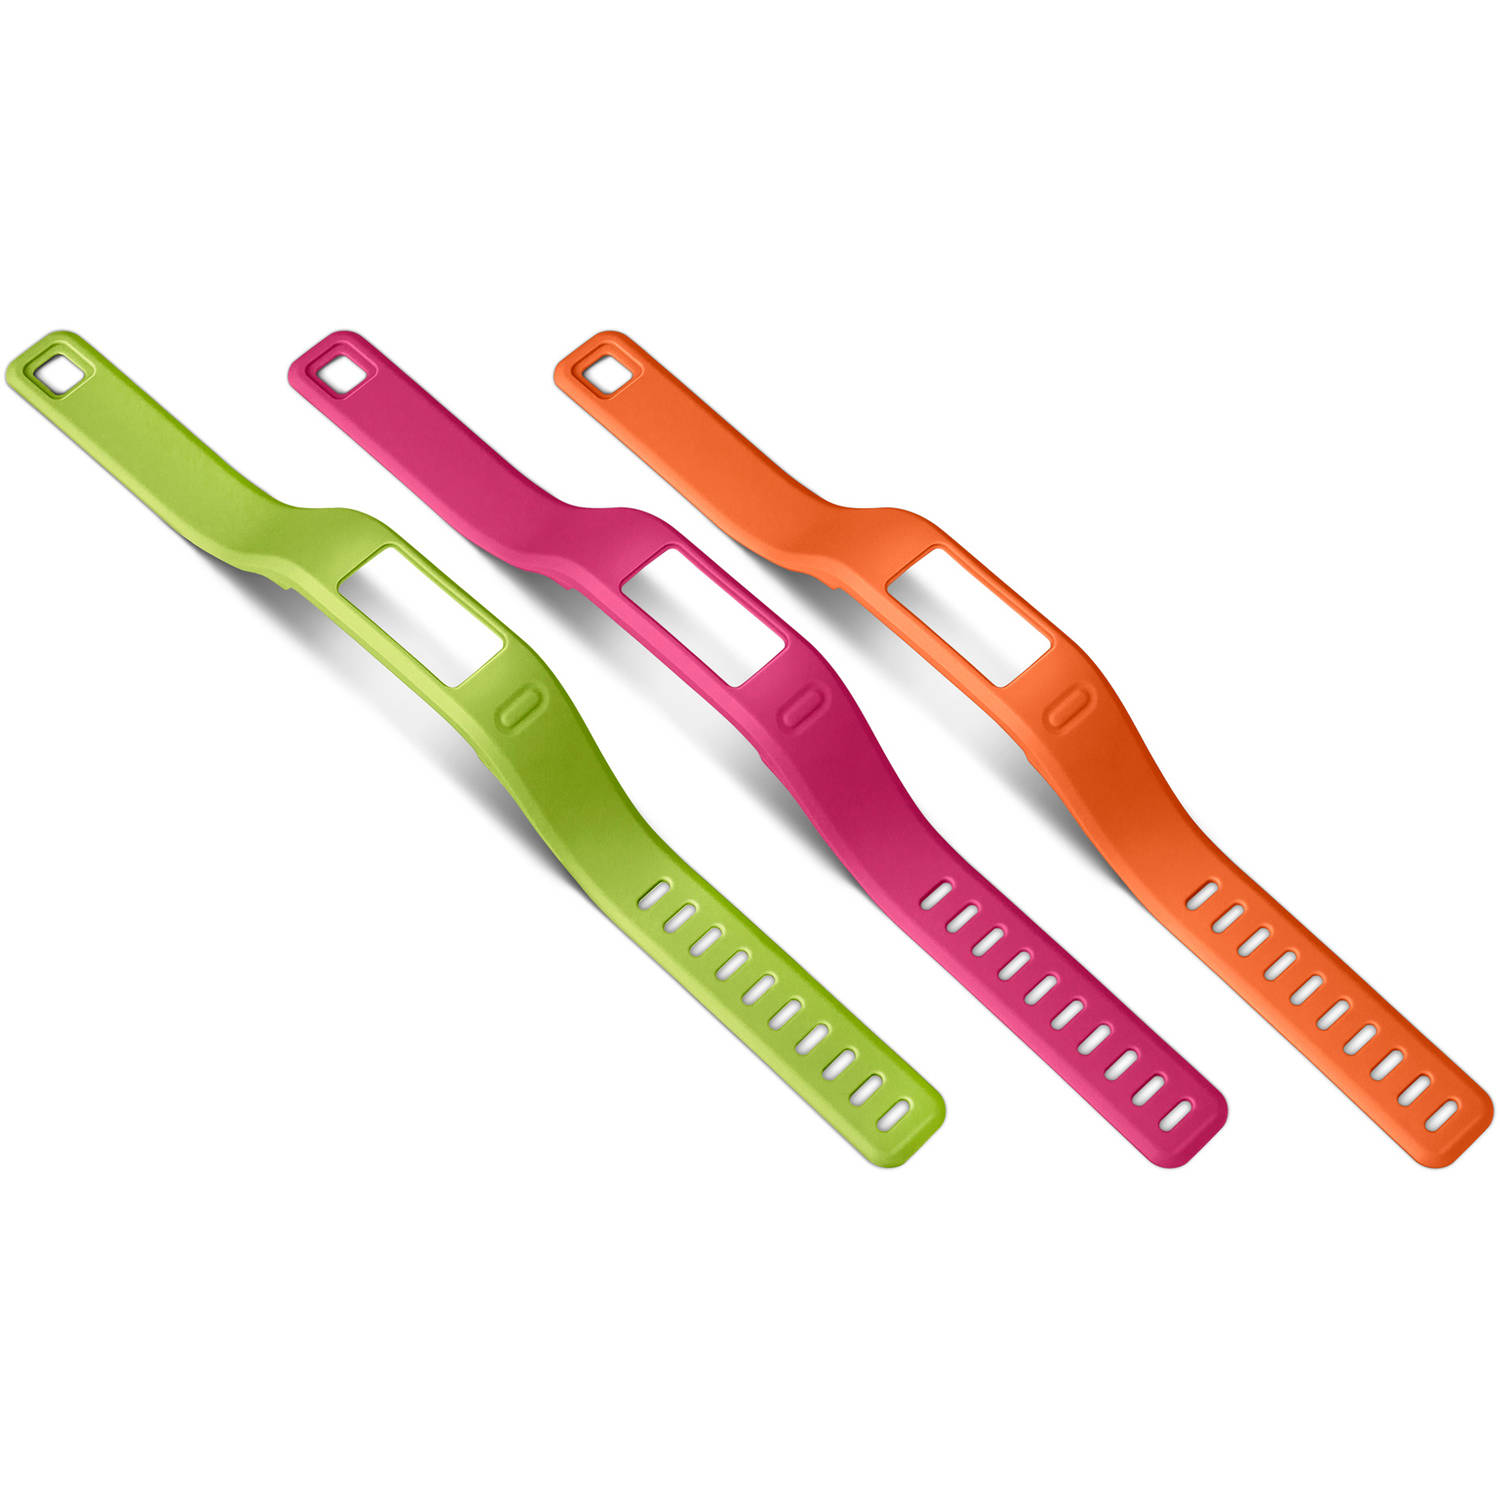 Garmin vivofit Accessory Band Pack, Available in two color packs and sizes